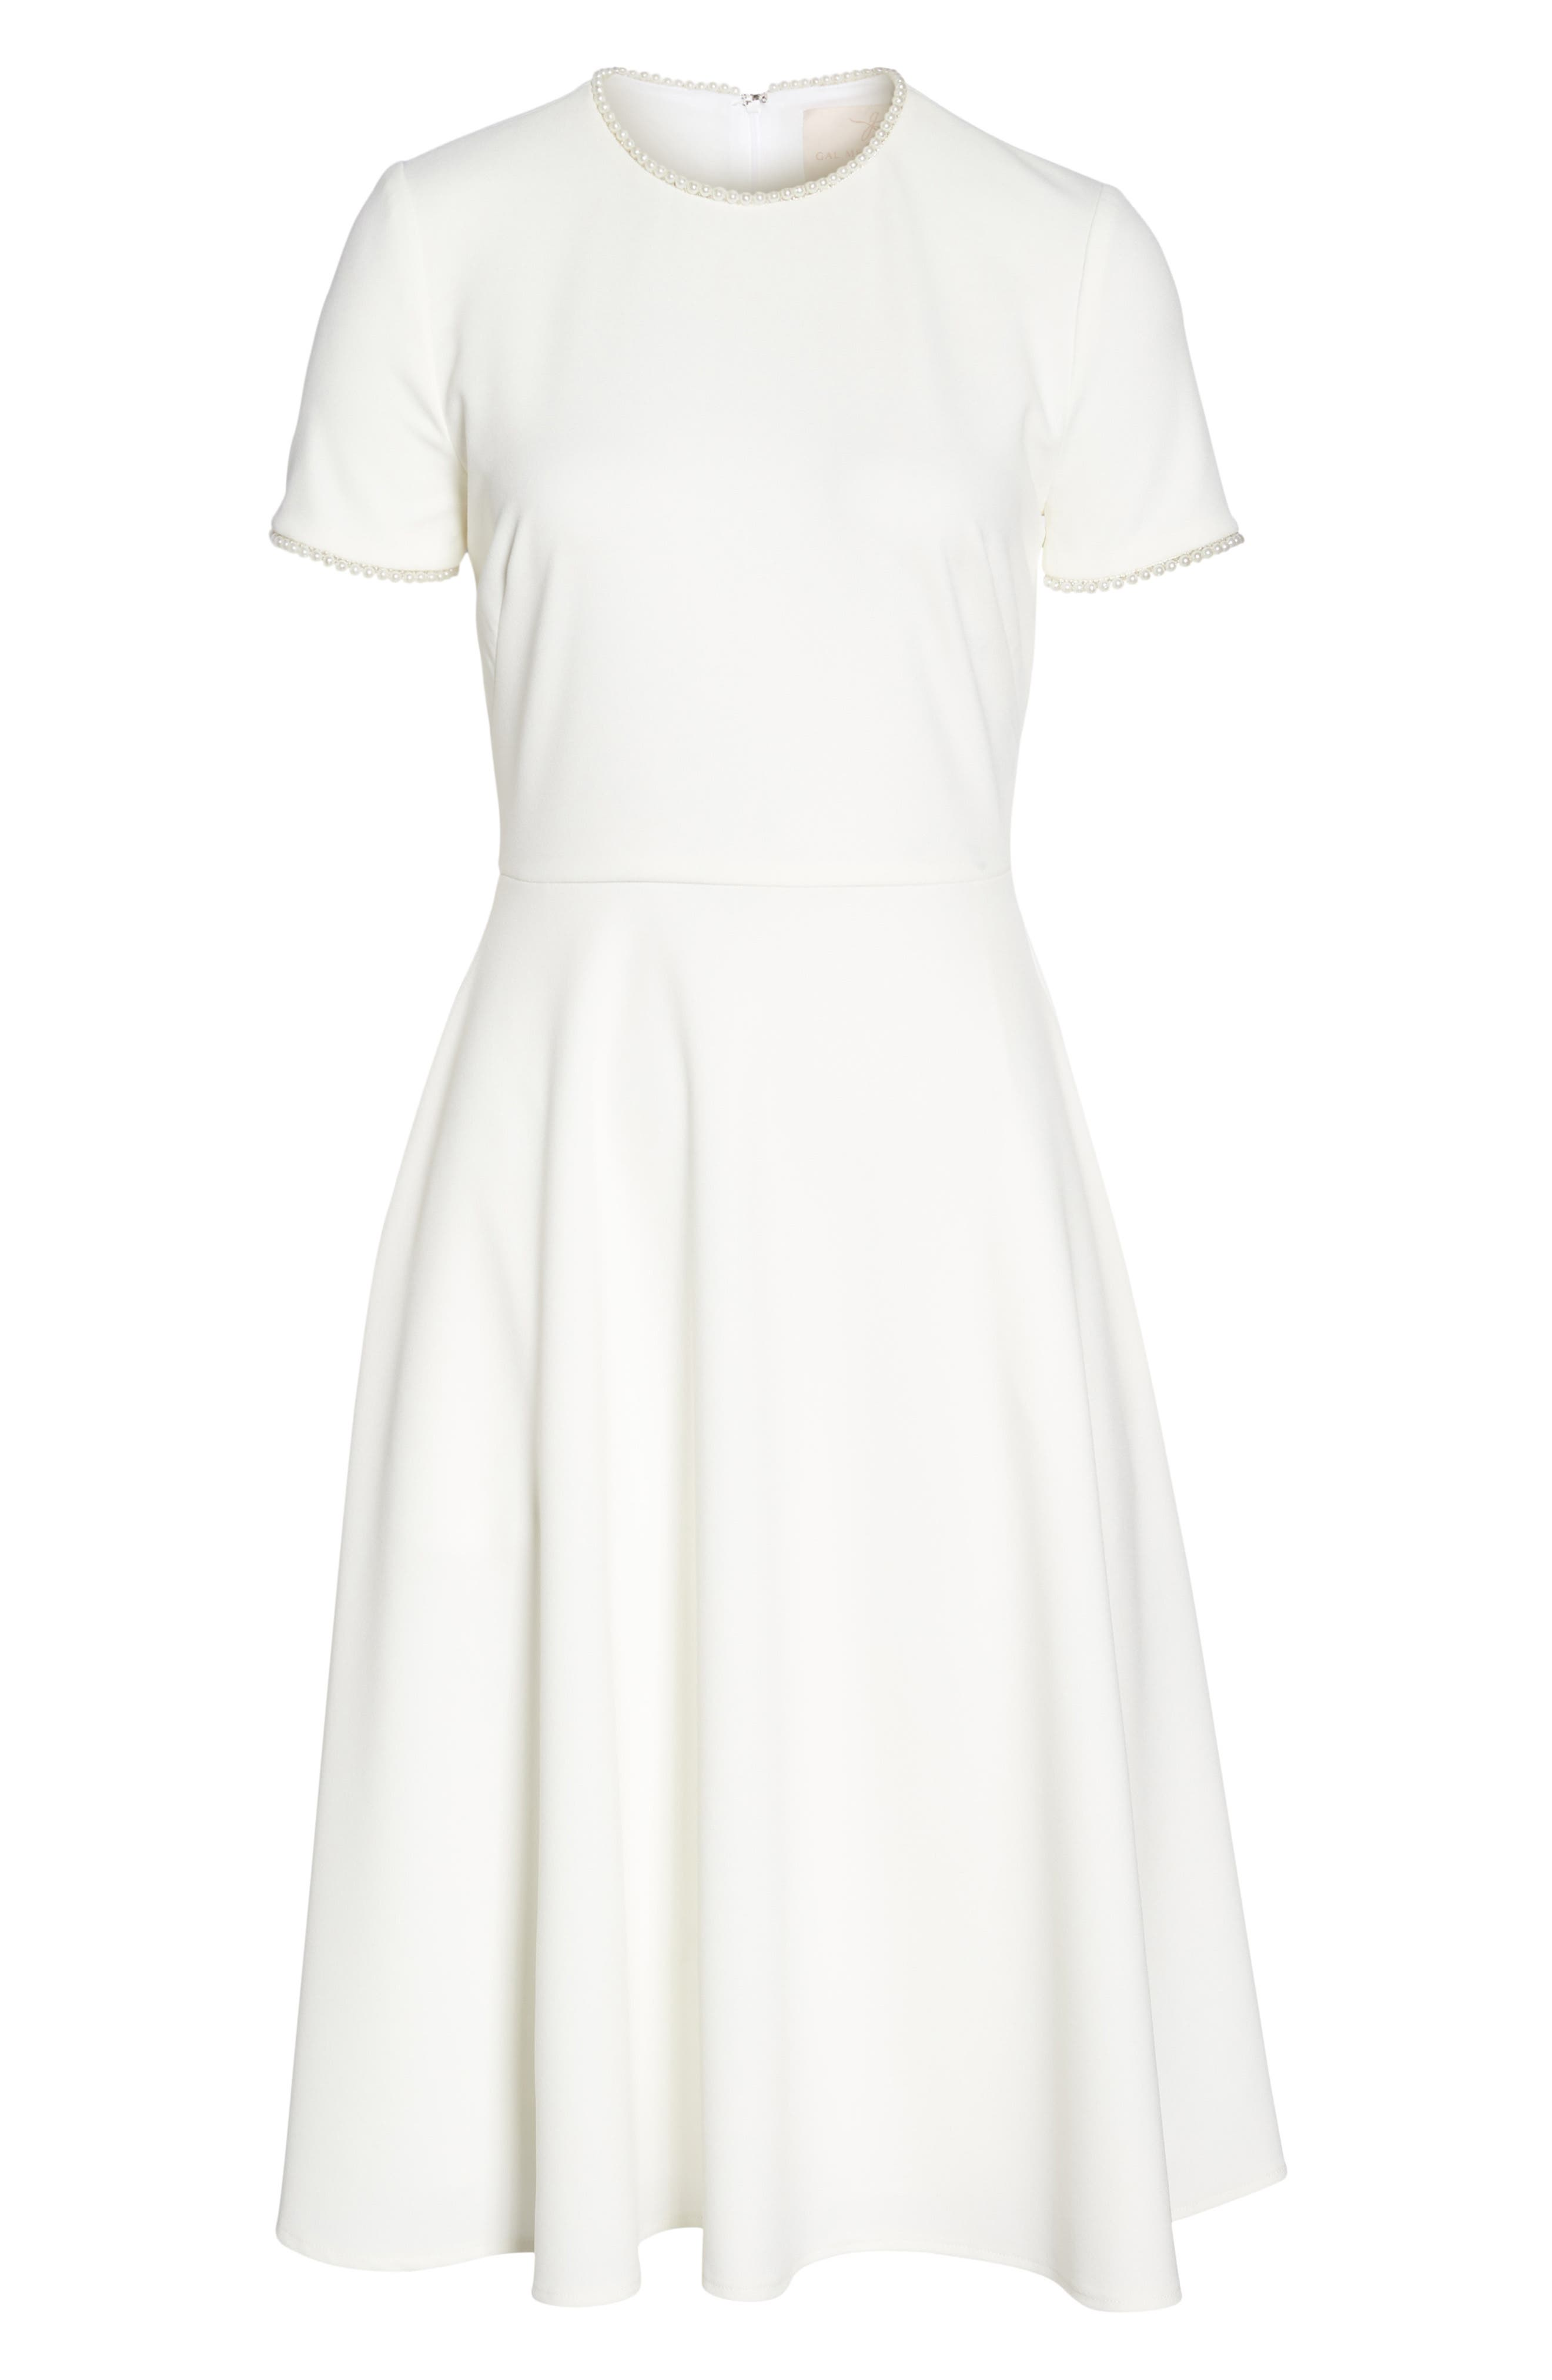 Victoria Pearly Trim Fit & Flare Dress,                             Alternate thumbnail 6, color,                             Creme